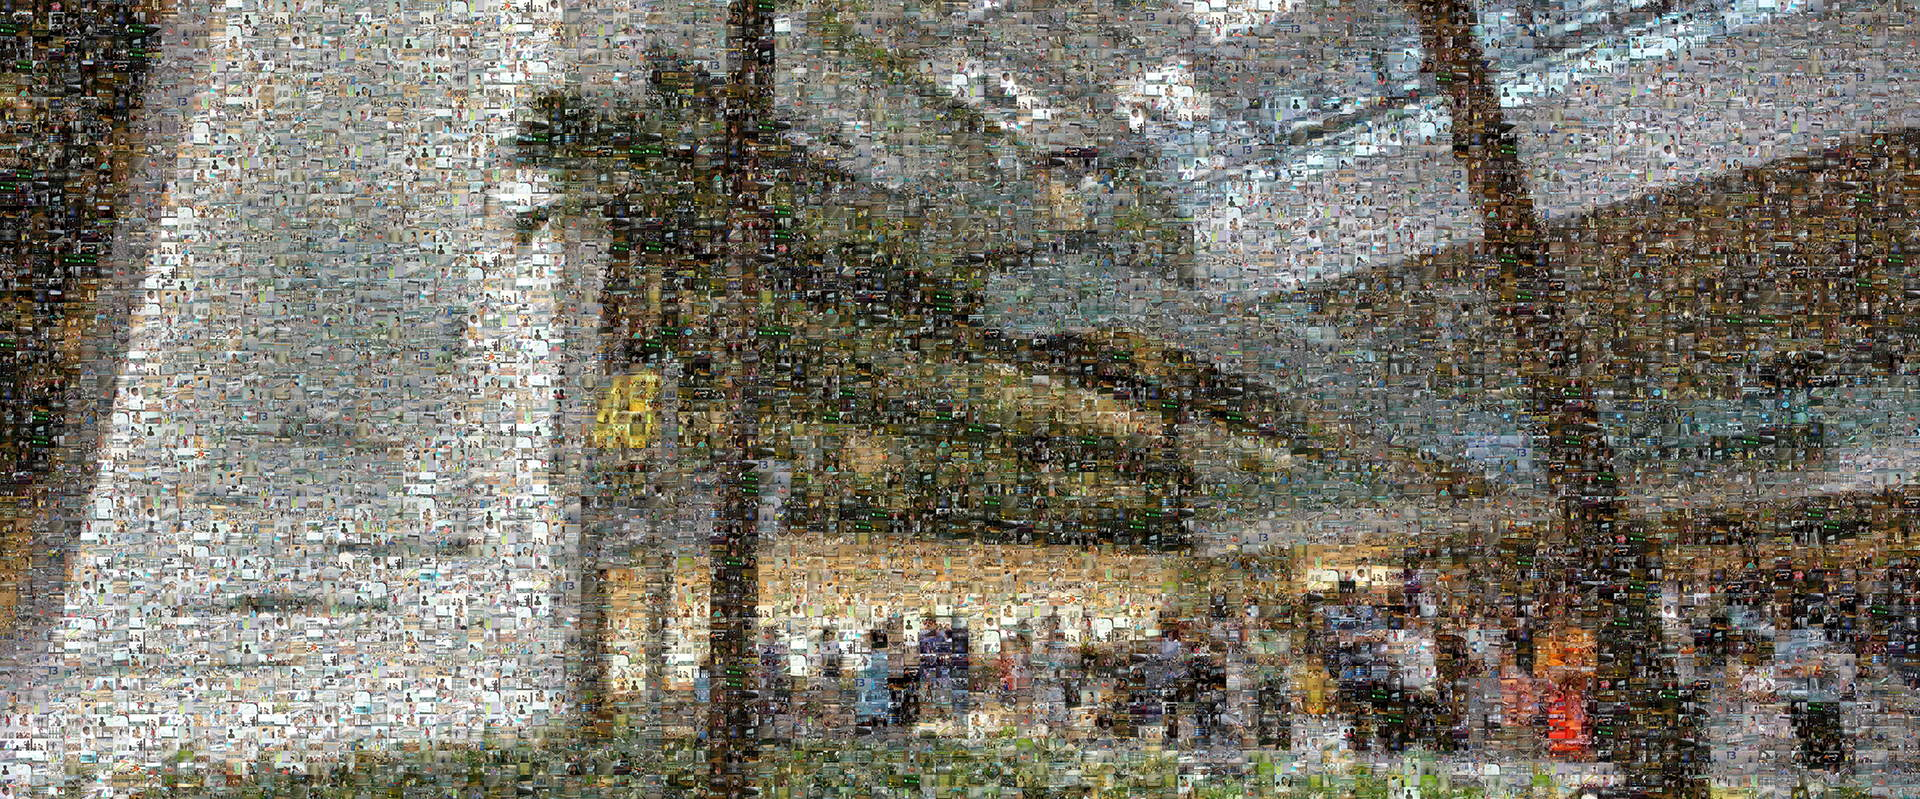 photo mosaic 12x24 foot permanent mural within the new Singapore T3 airport created using over 1100 traveler submitted photos